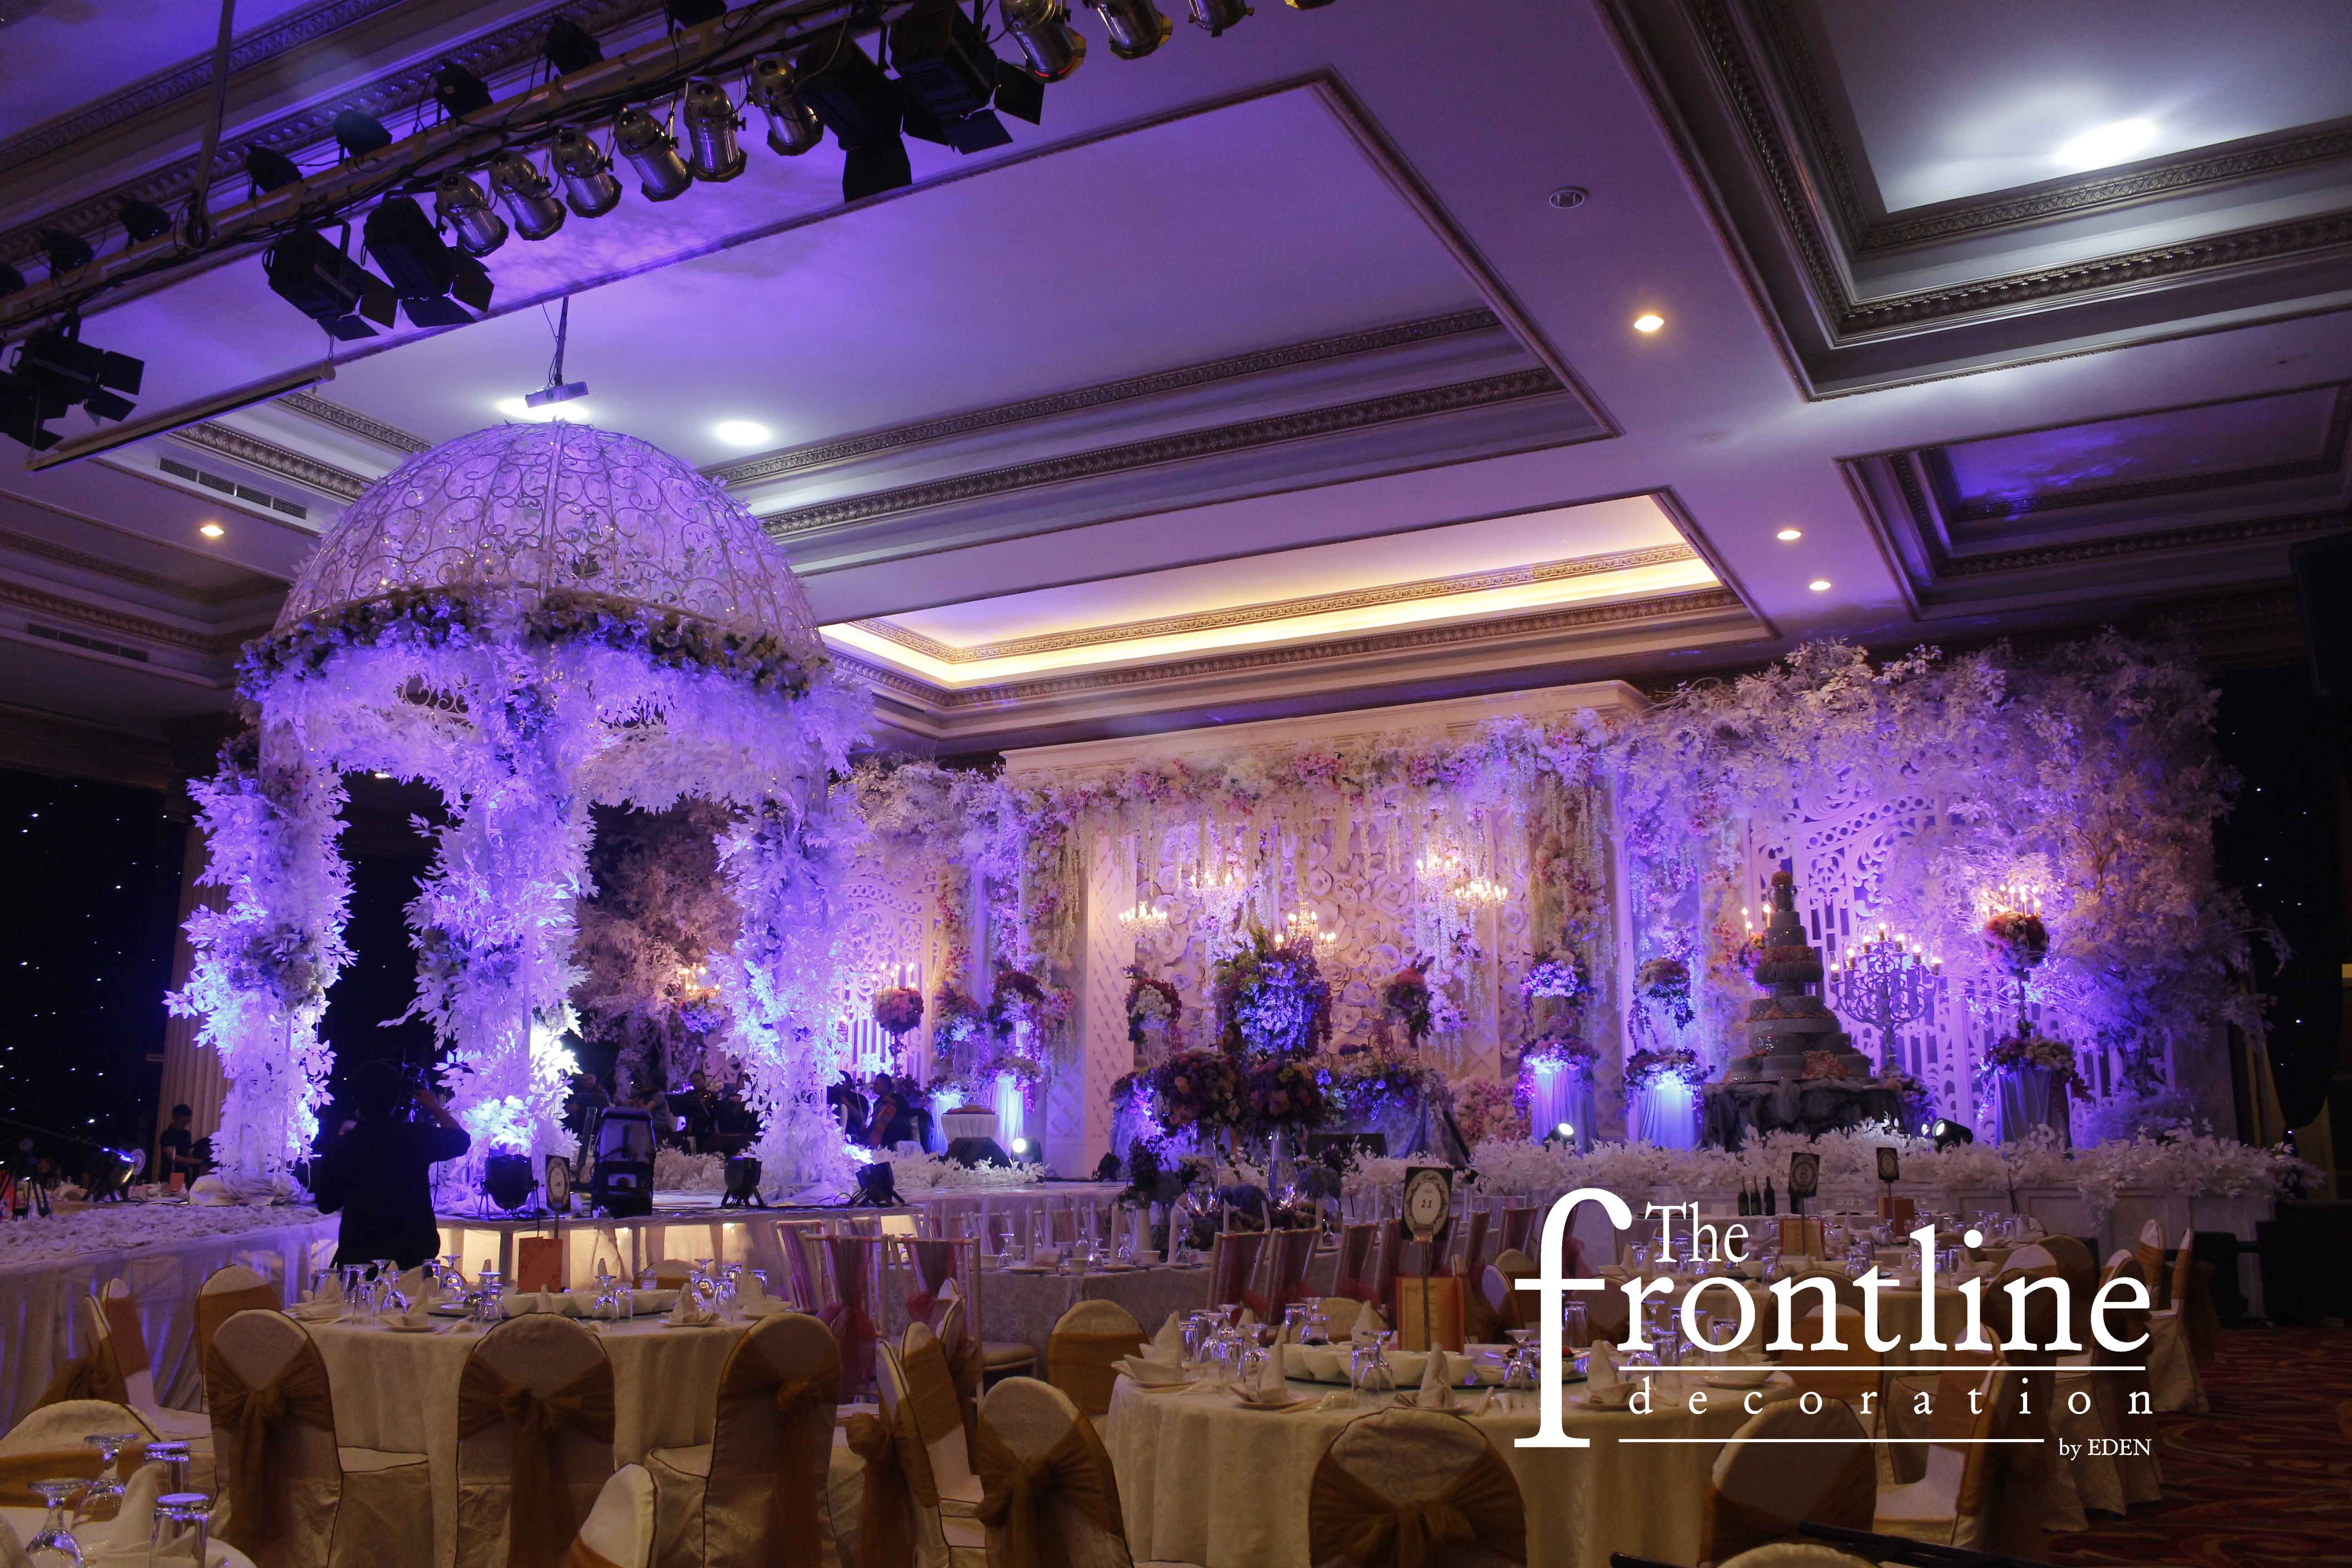 Directory of wedding decoration lighting vendors in surabaya directory of wedding decoration lighting vendors in surabaya bridestory junglespirit Choice Image